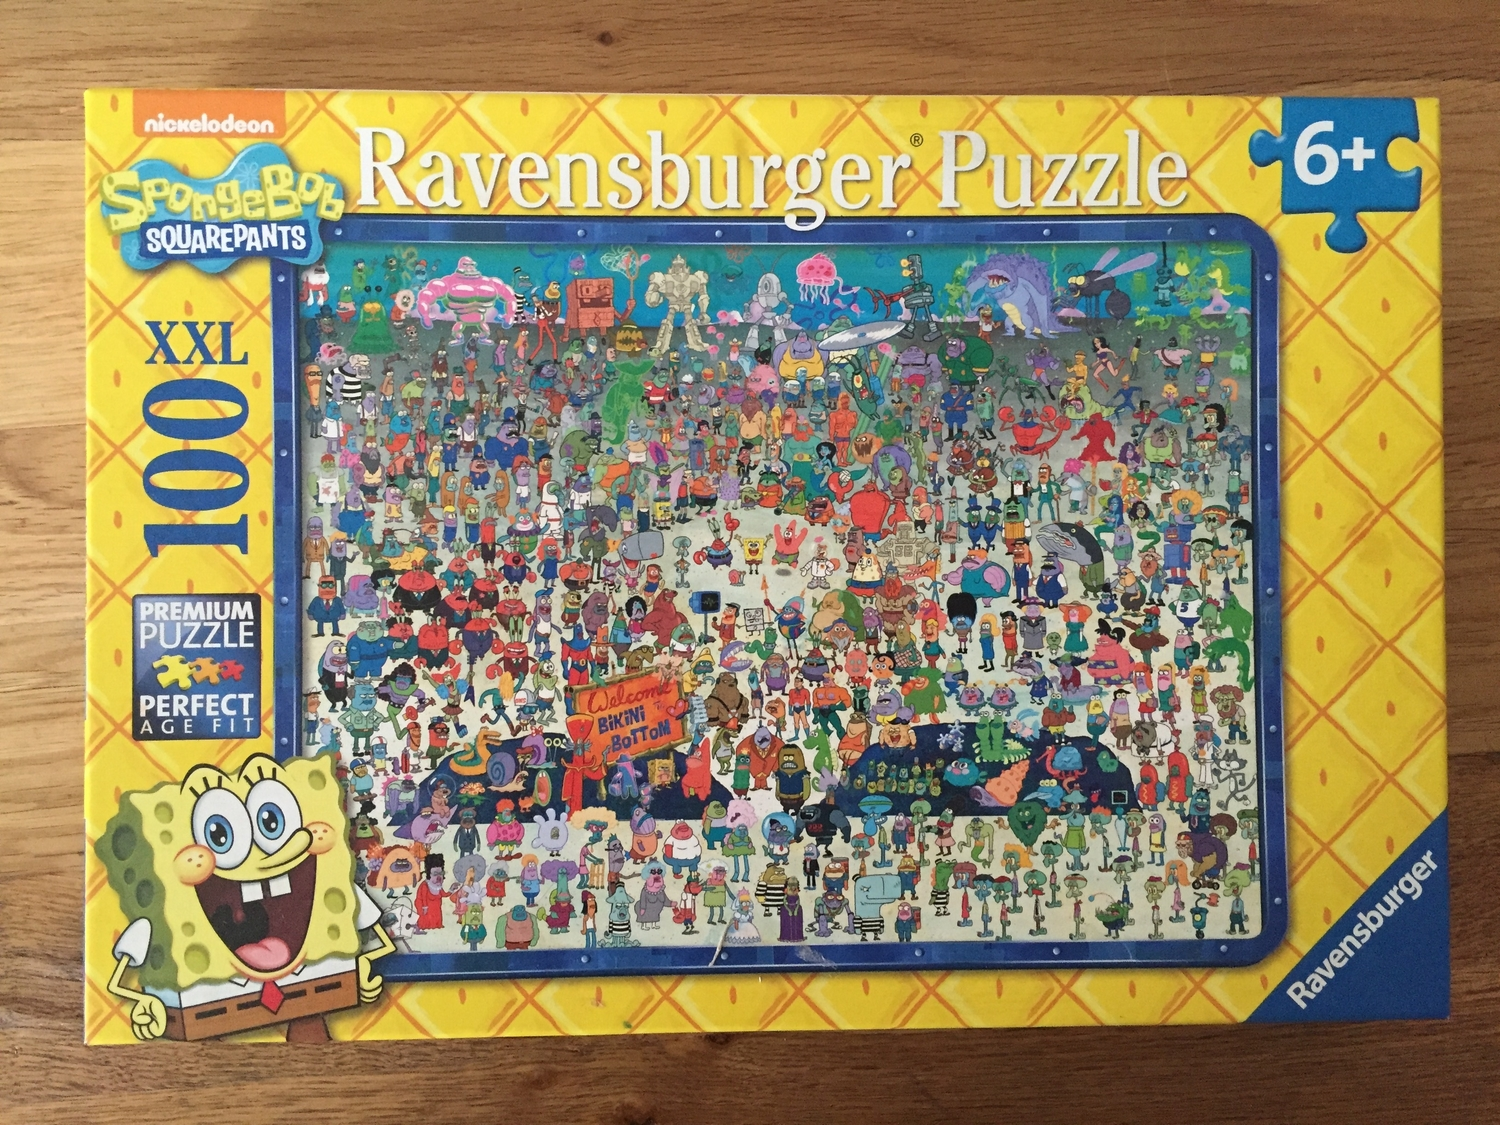 We were recently sent the Ravensburger SpongeBob Squarepants 100 XXL piece jigsaw puzzle for review. Jacob is a big SpongeBob Squarepants fan, and he loves puzzles, so he was super excited to receive the latest one from Ravensburger.